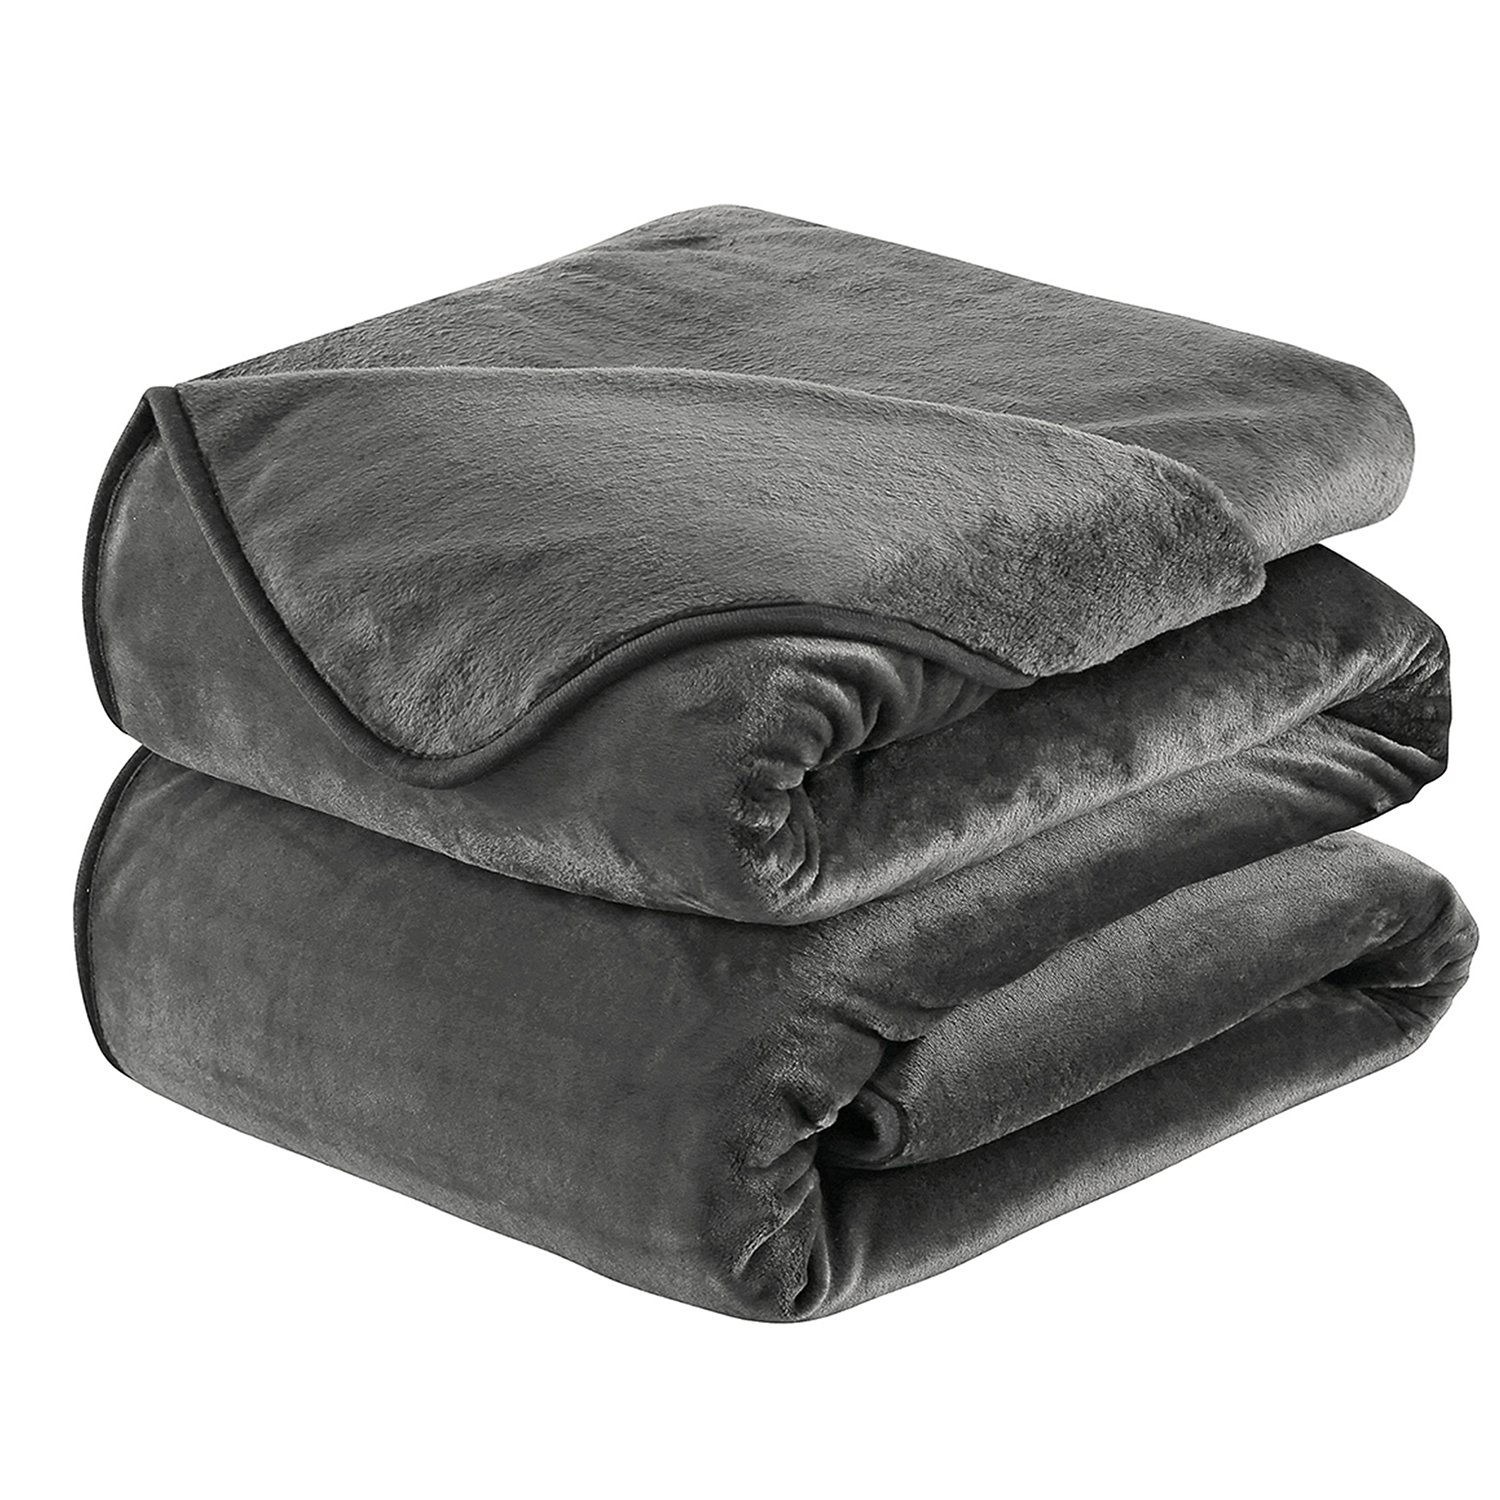 soft blanket queen size fleece warm fuzzy throw blankets for the bed